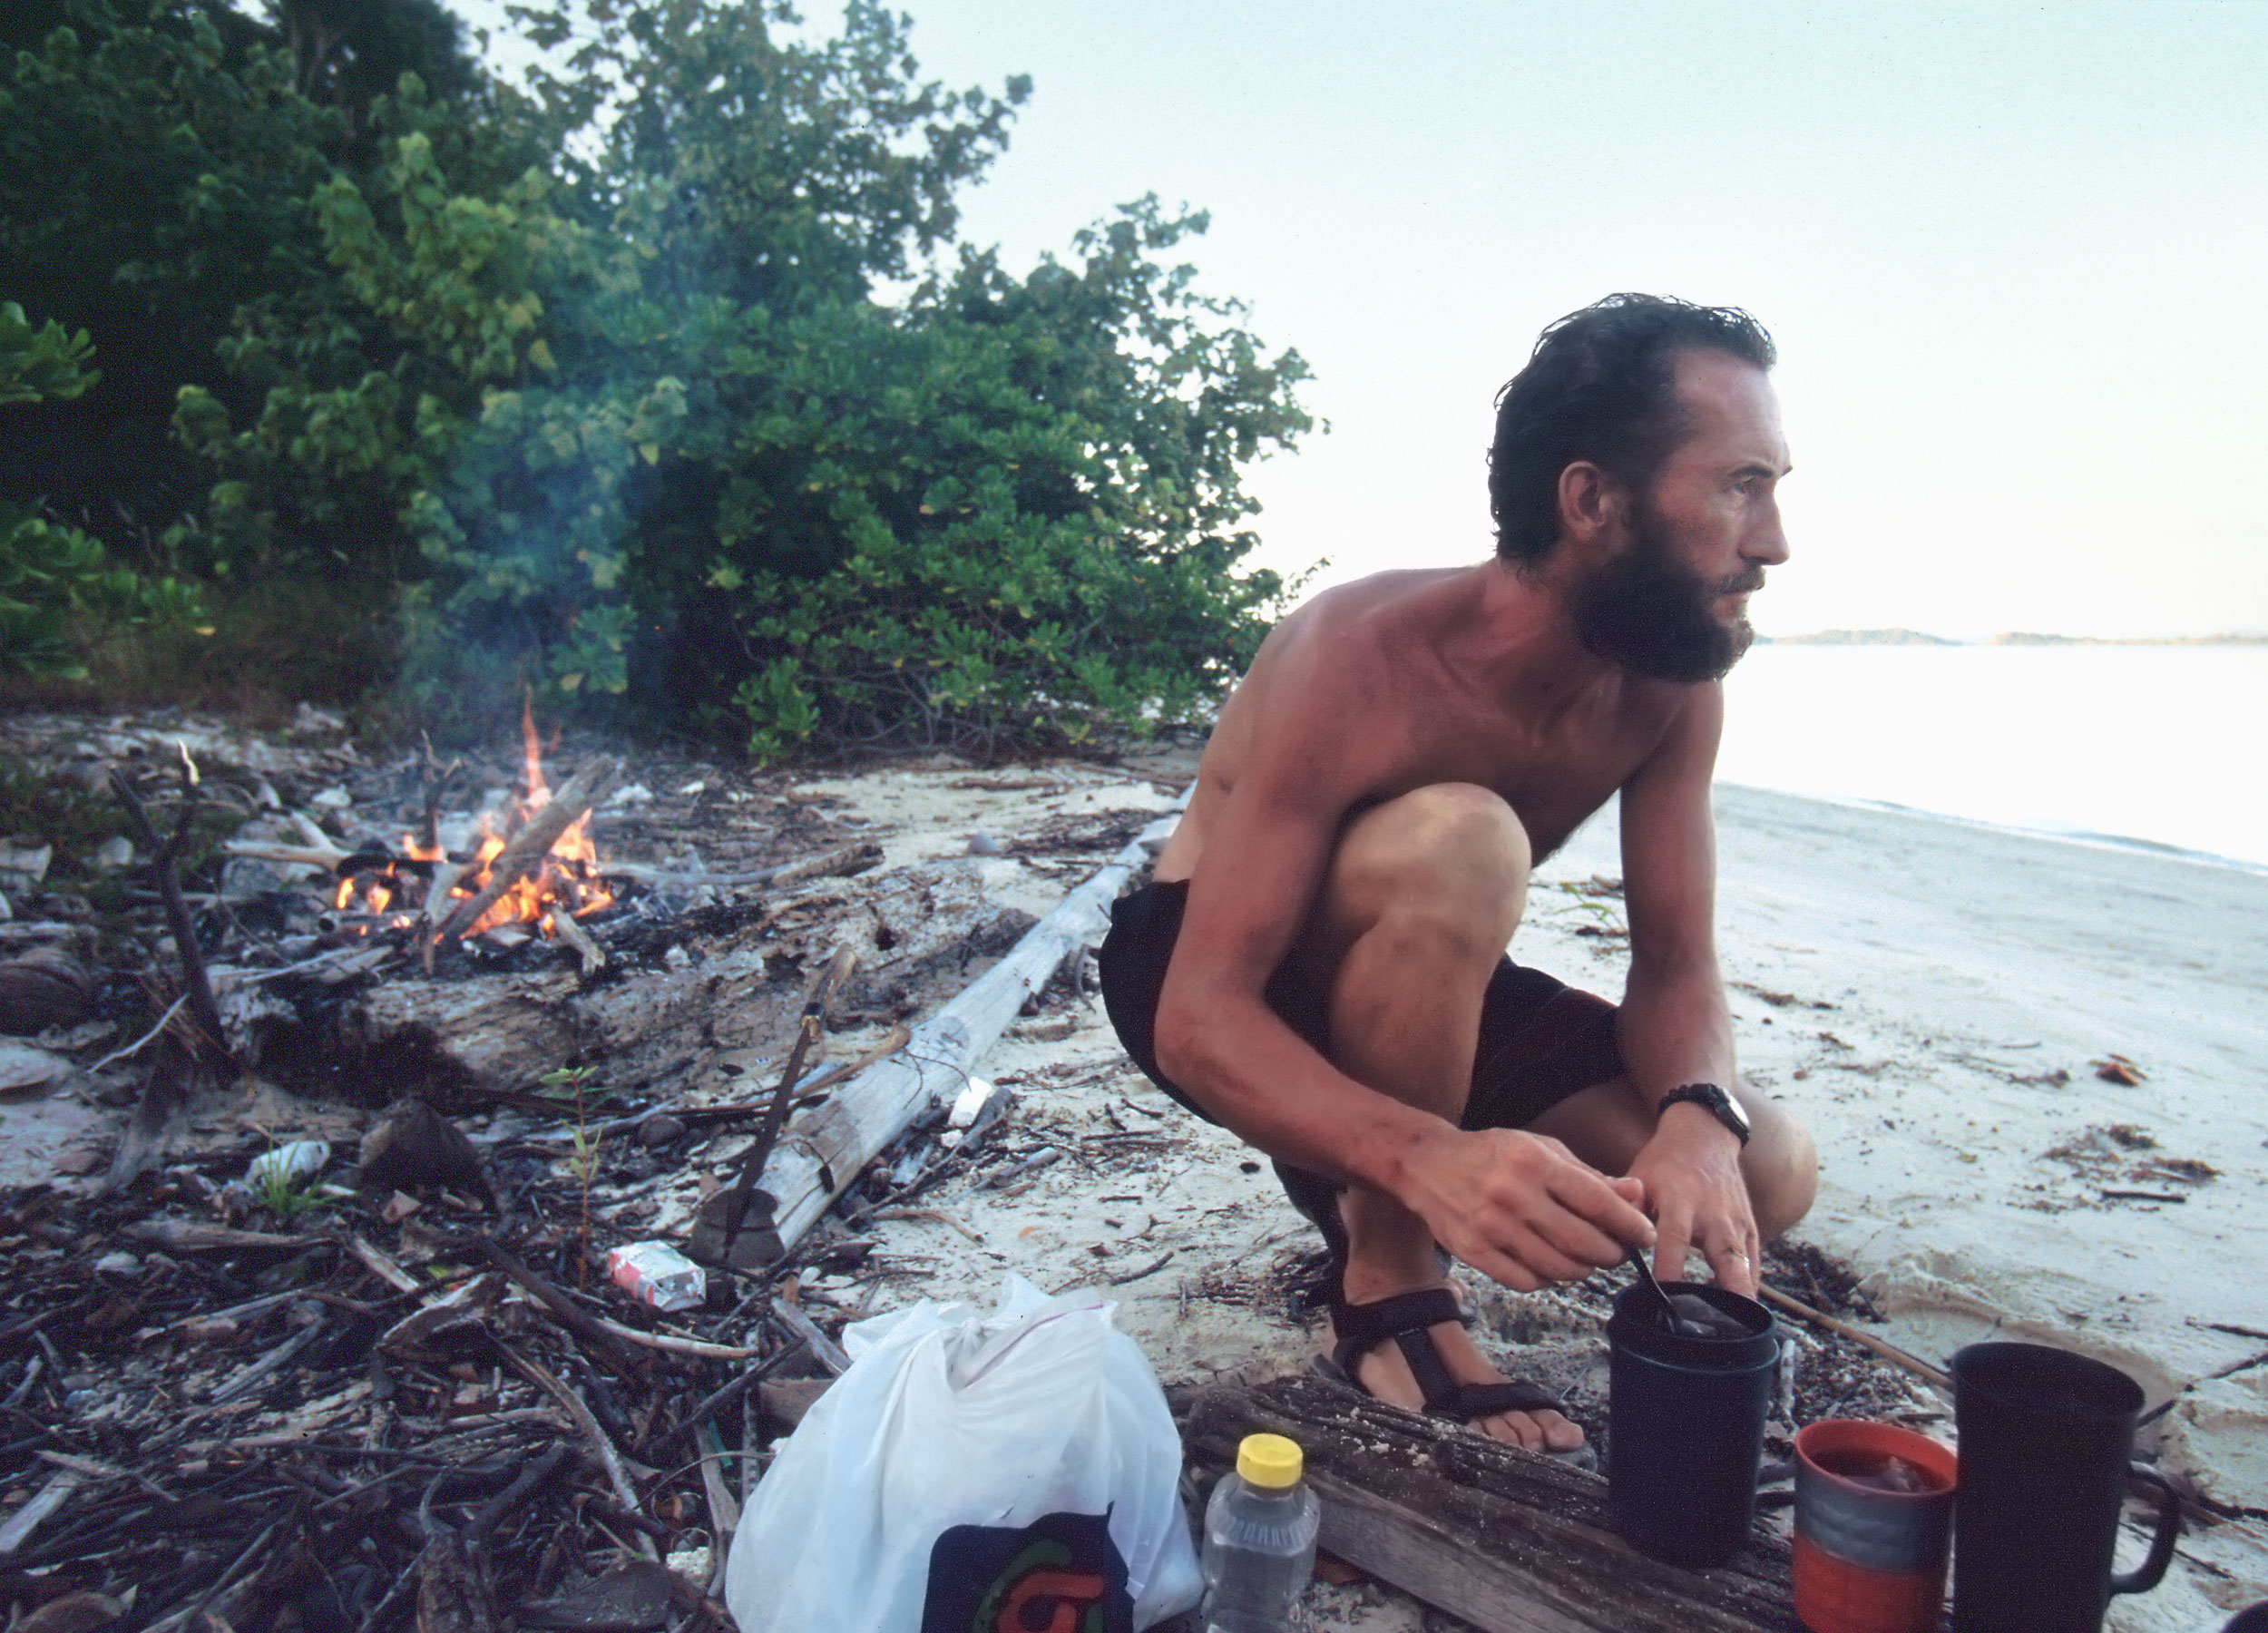 Man squatting by his campfire over cans by the water's edge